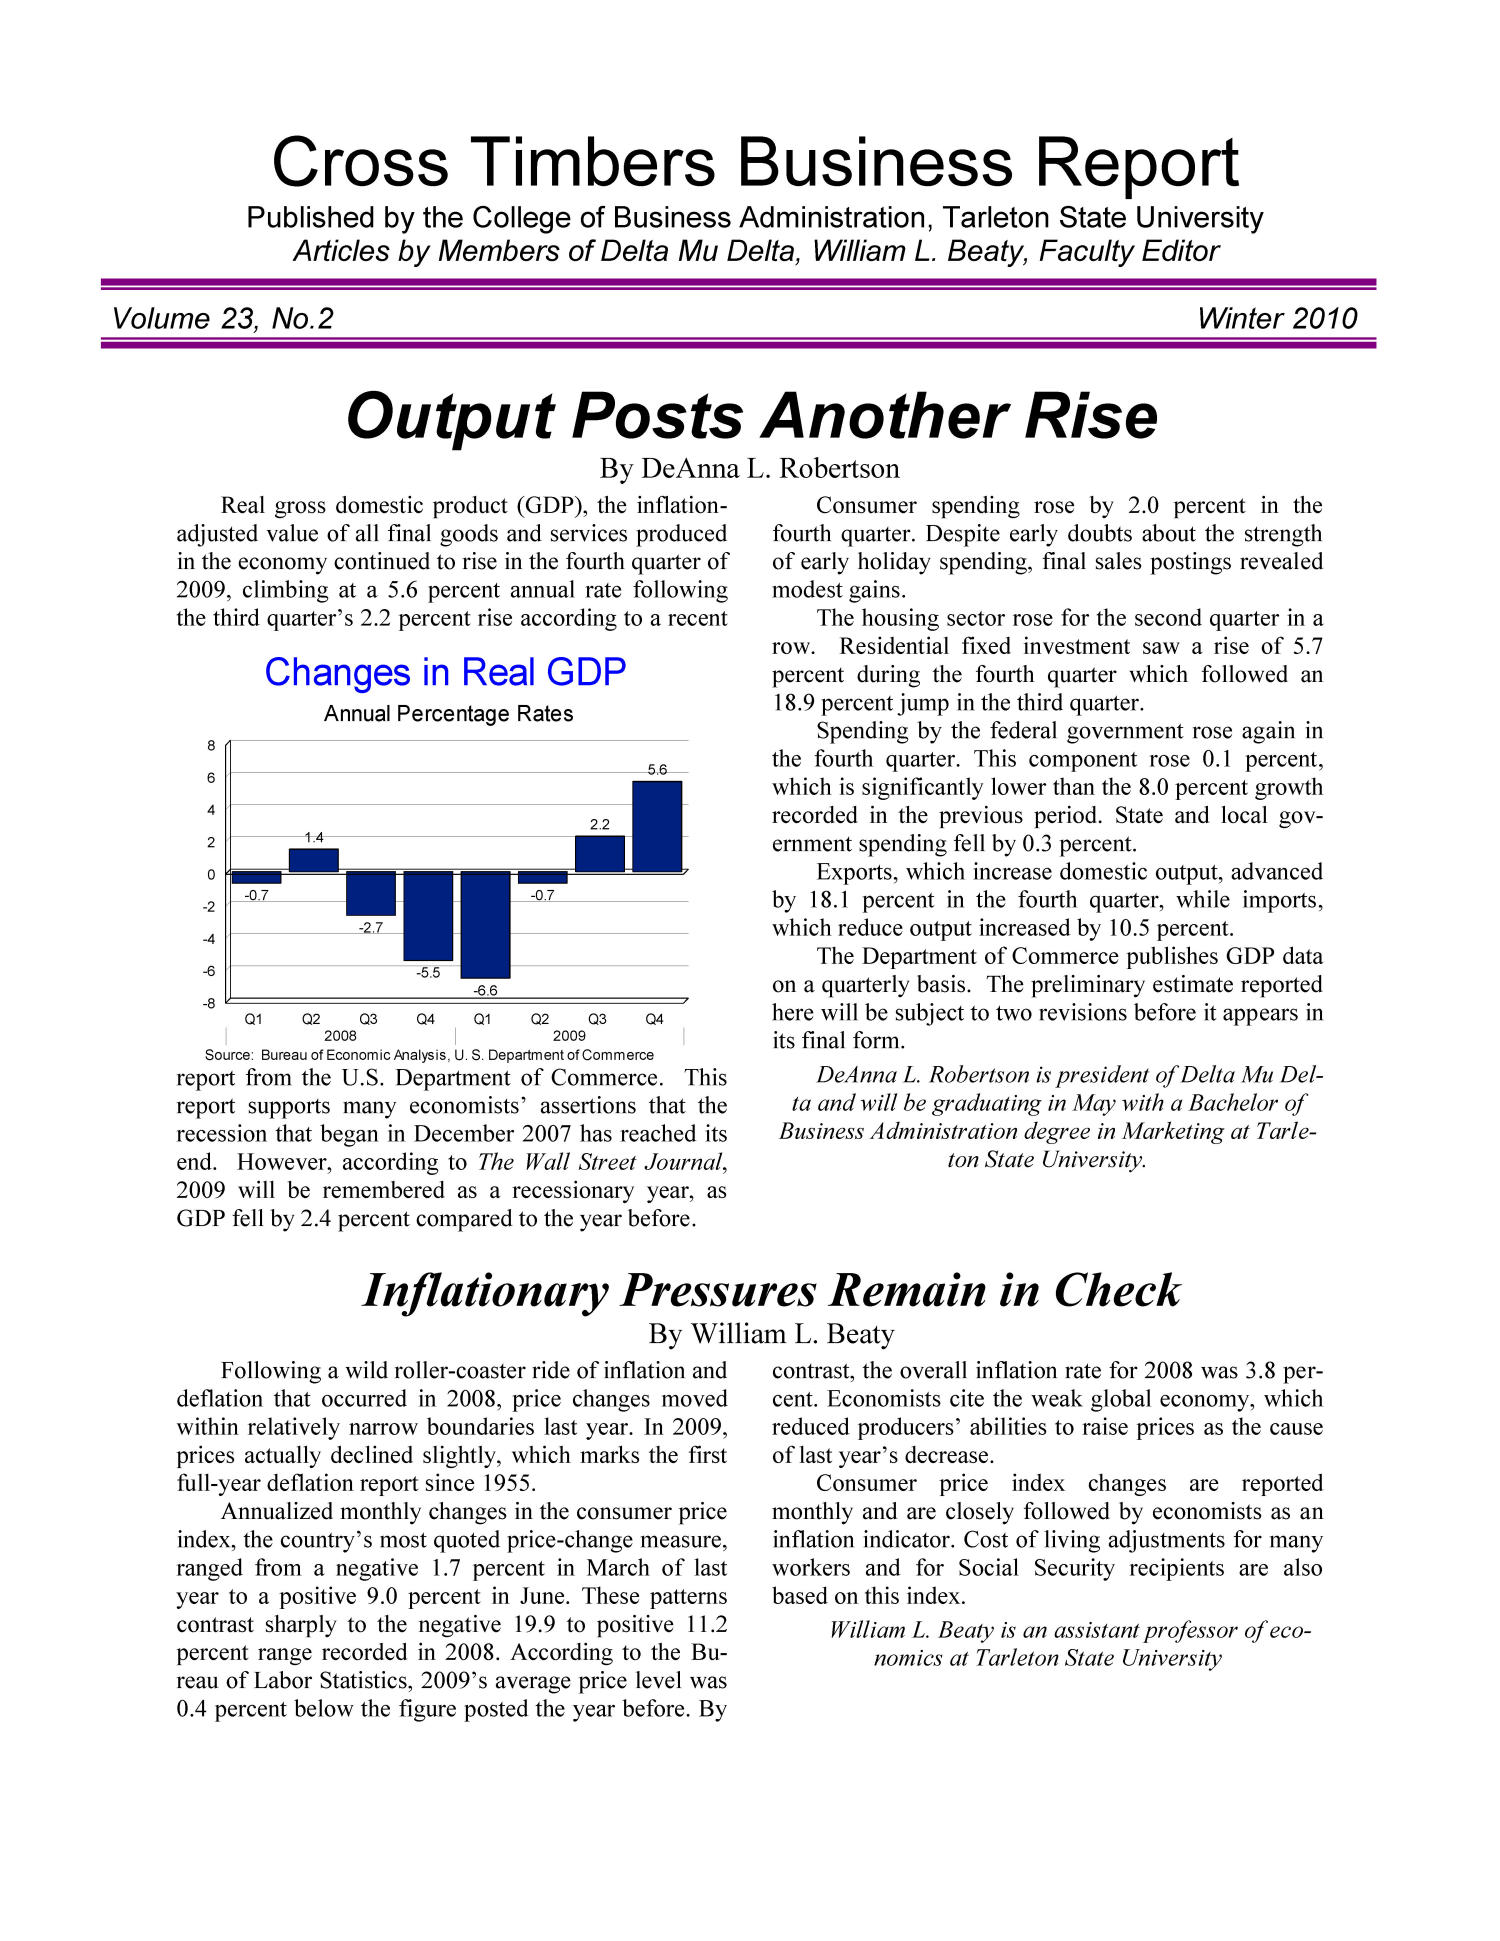 Cross Timbers Business Report, Volume 23, Number 2, Winter 2010                                                                                                      1